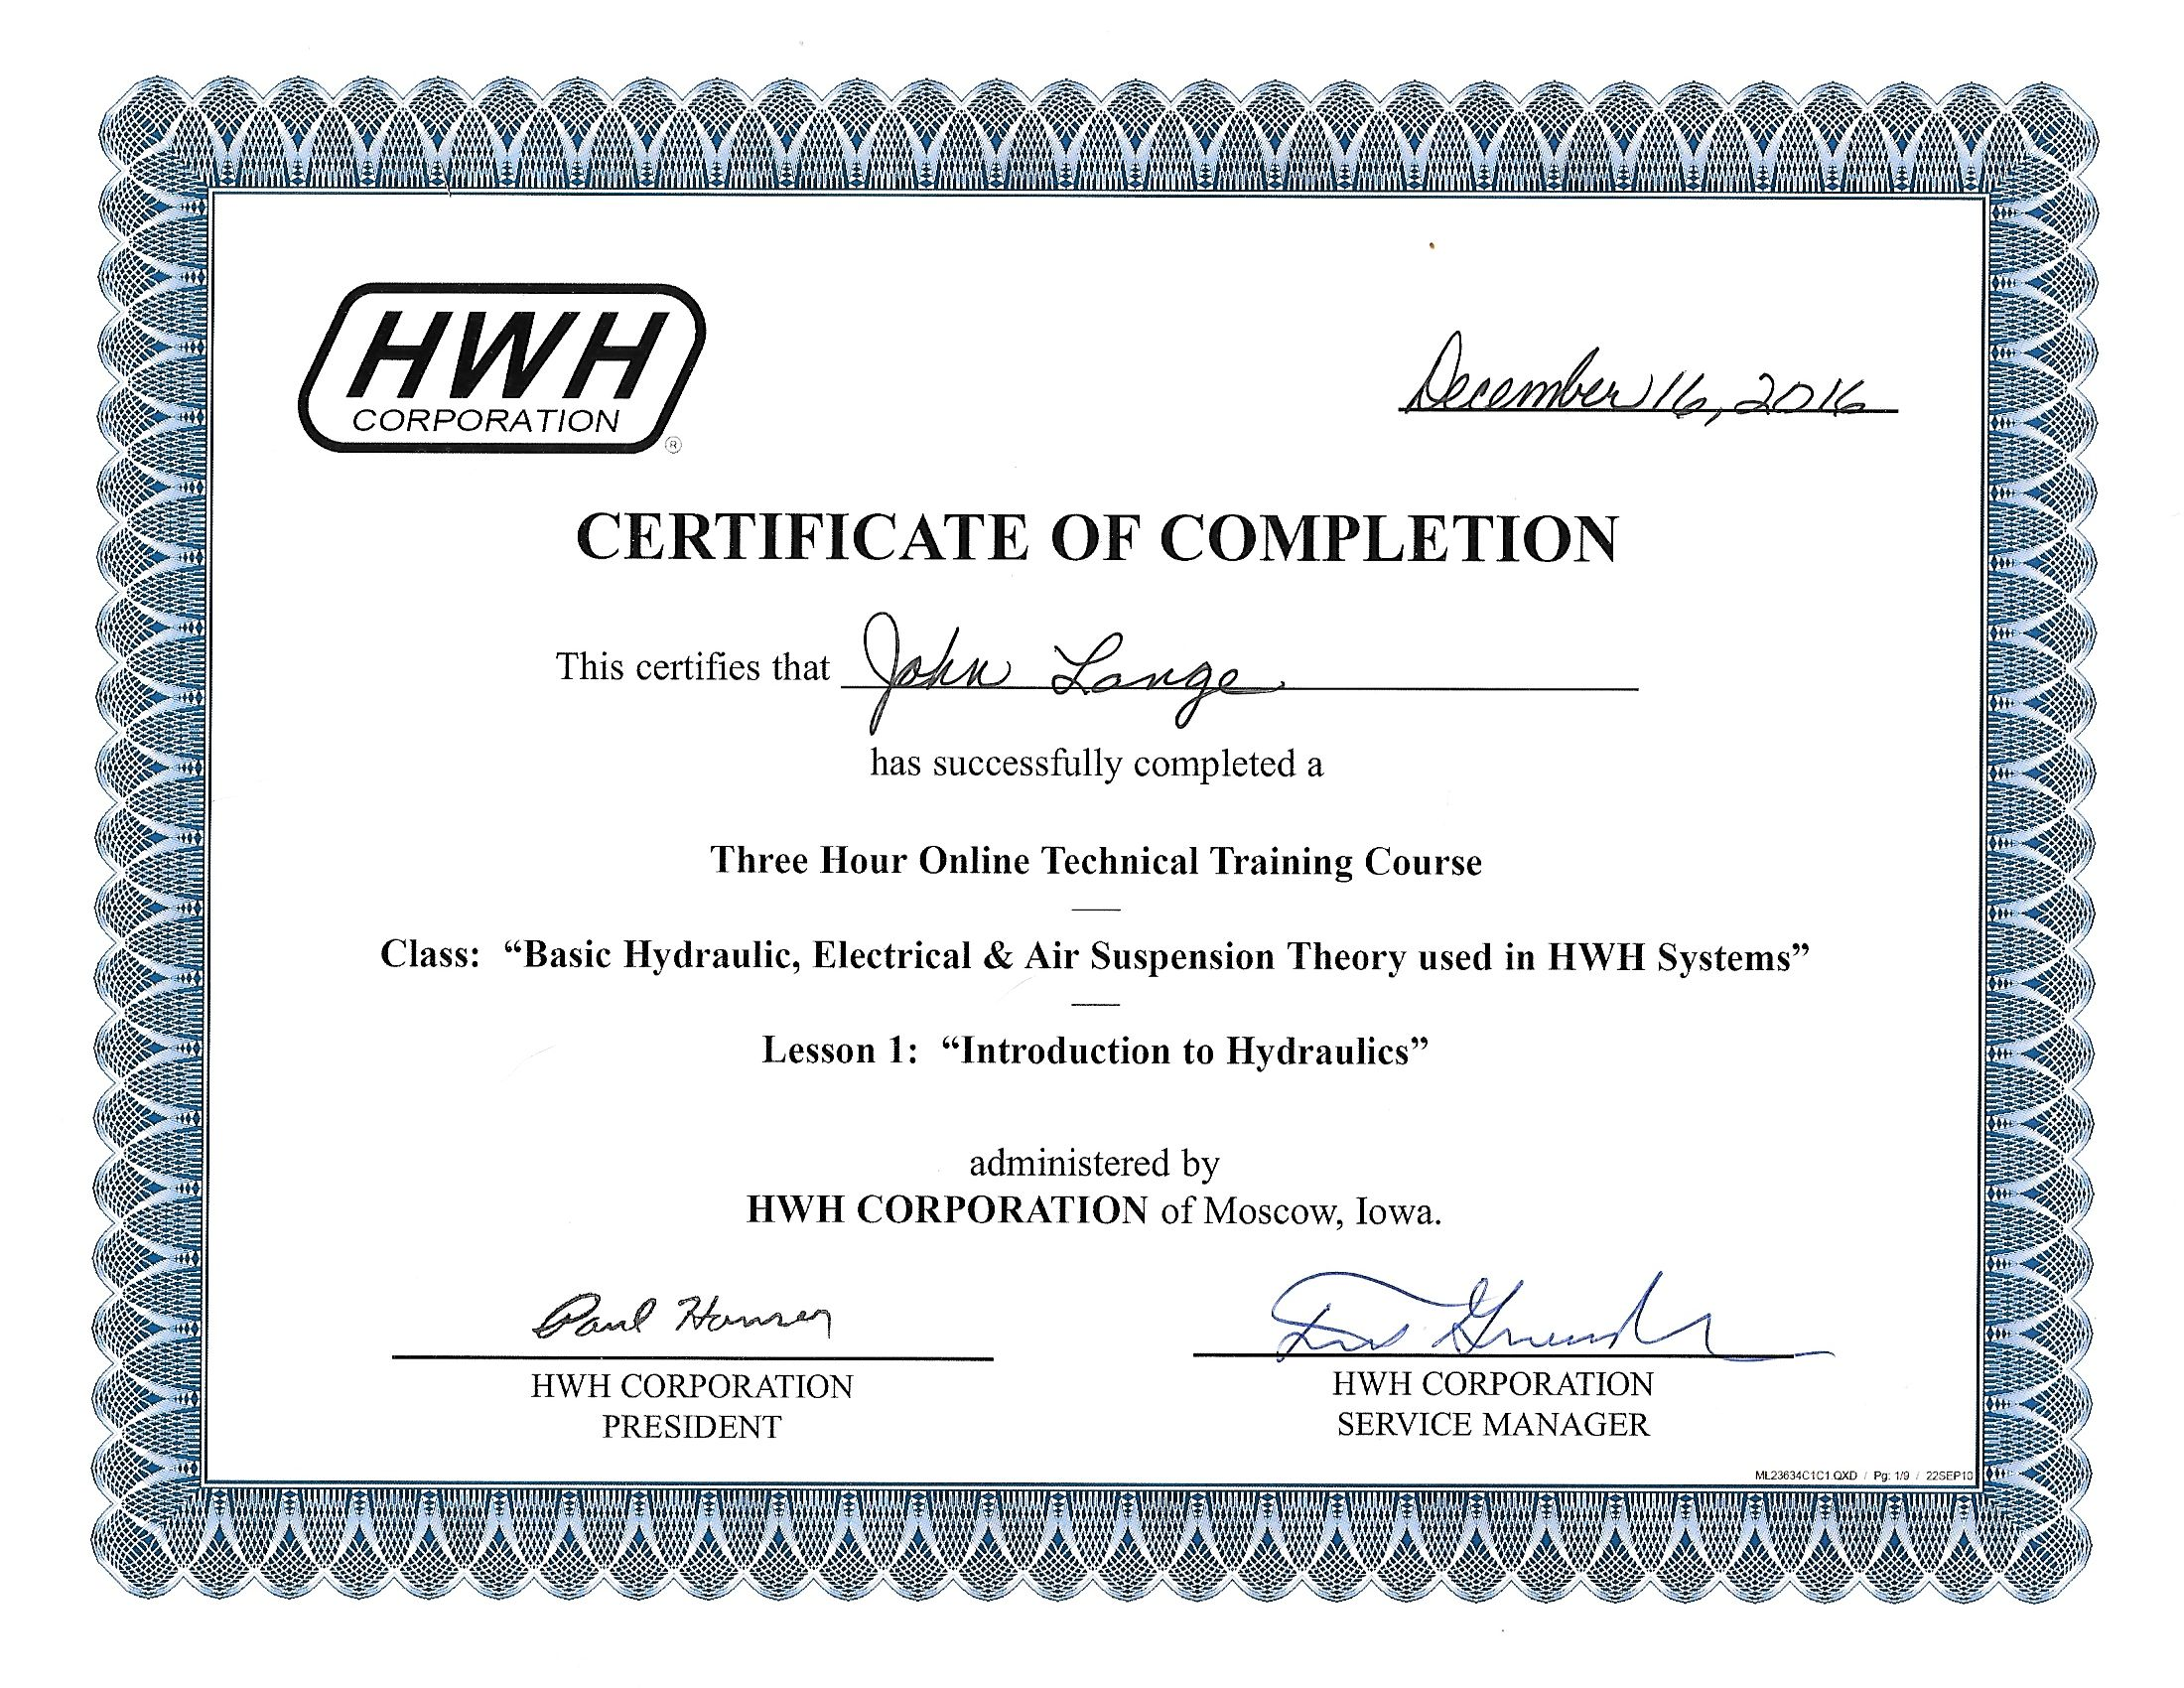 About us hwh leveling systems intro to hydraulics 1betcityfo Image collections